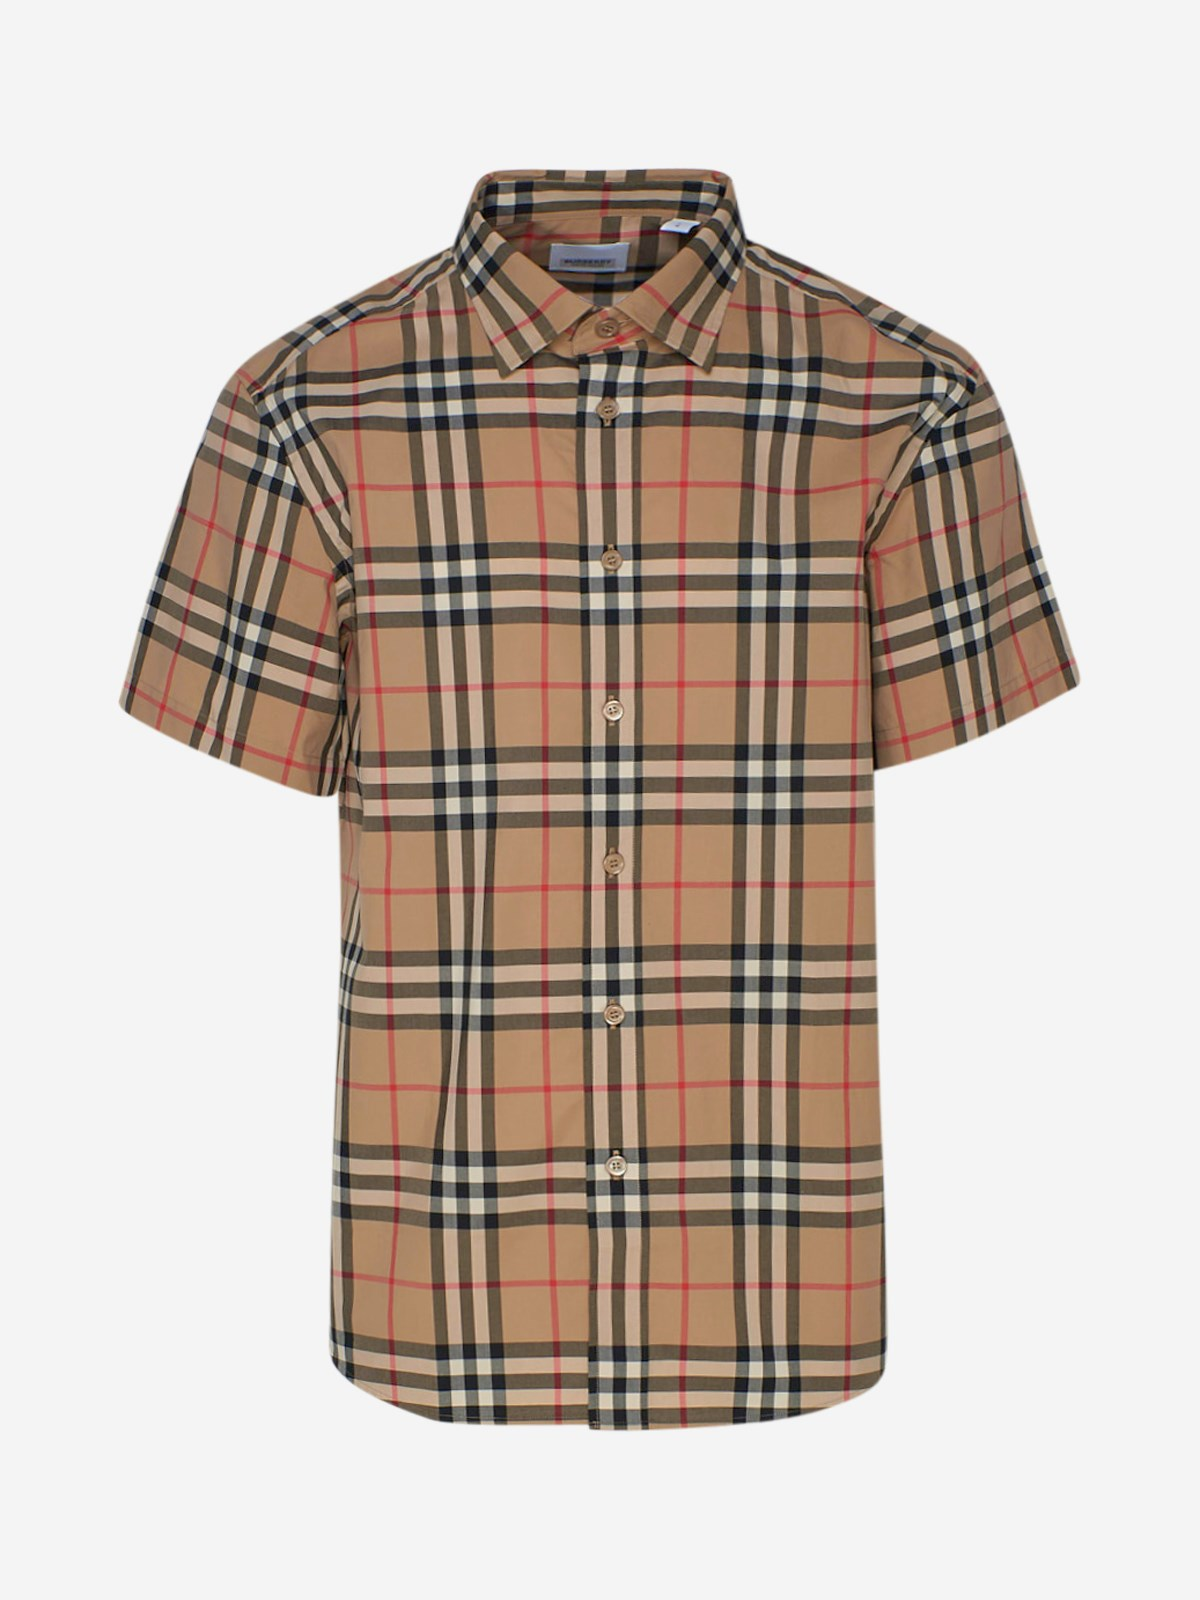 Burberry Tops CAMICIA CAXTON BEIGE